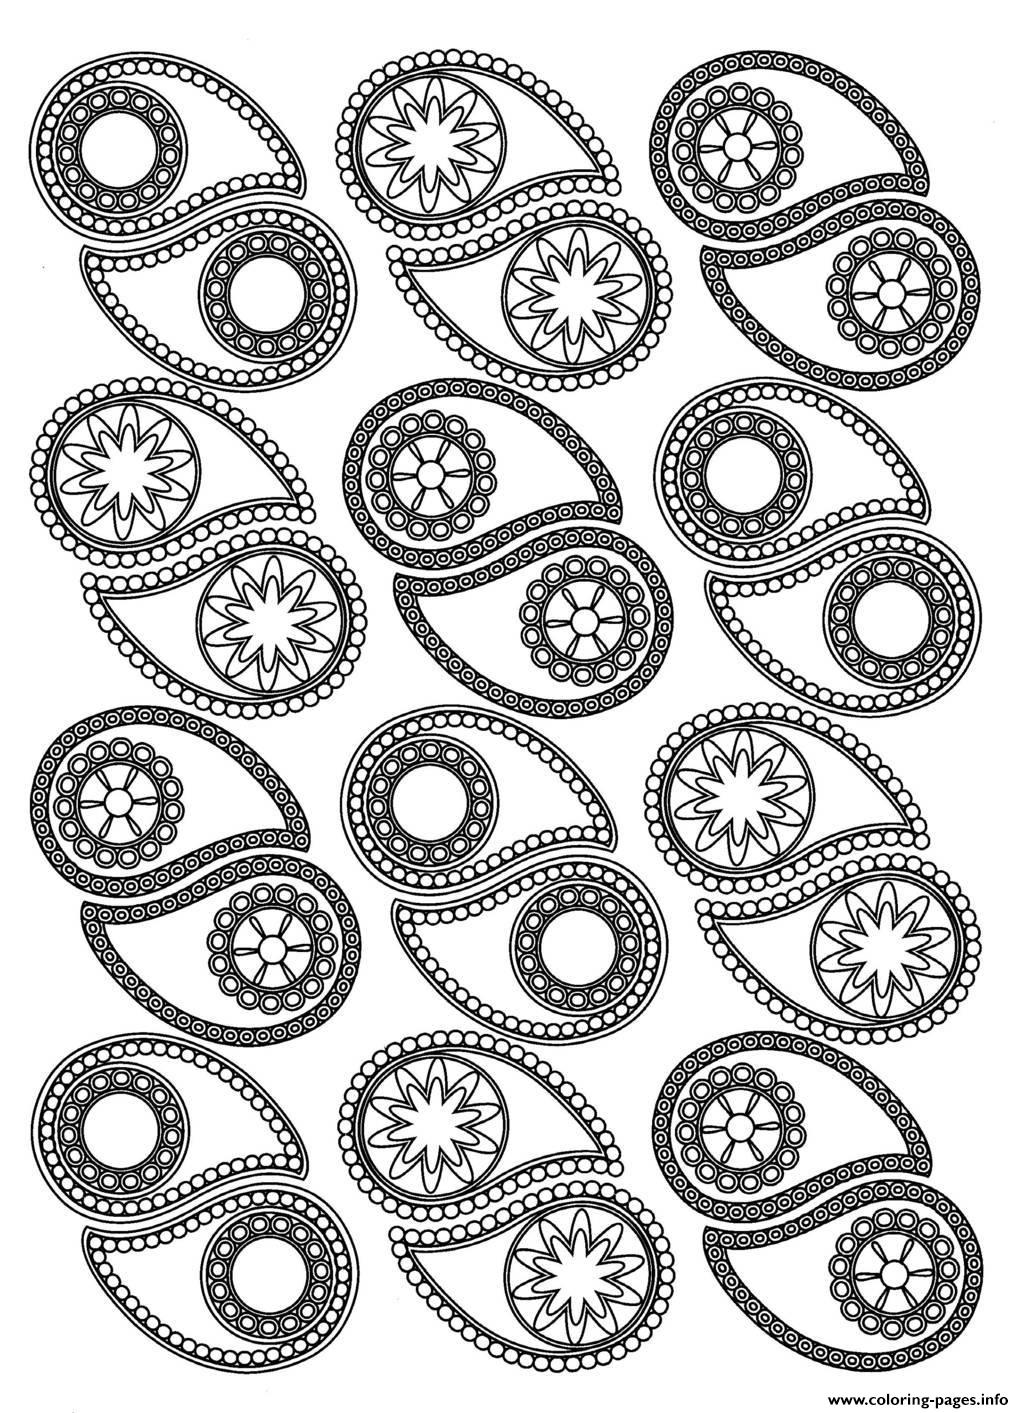 Adult Paisley coloring pages